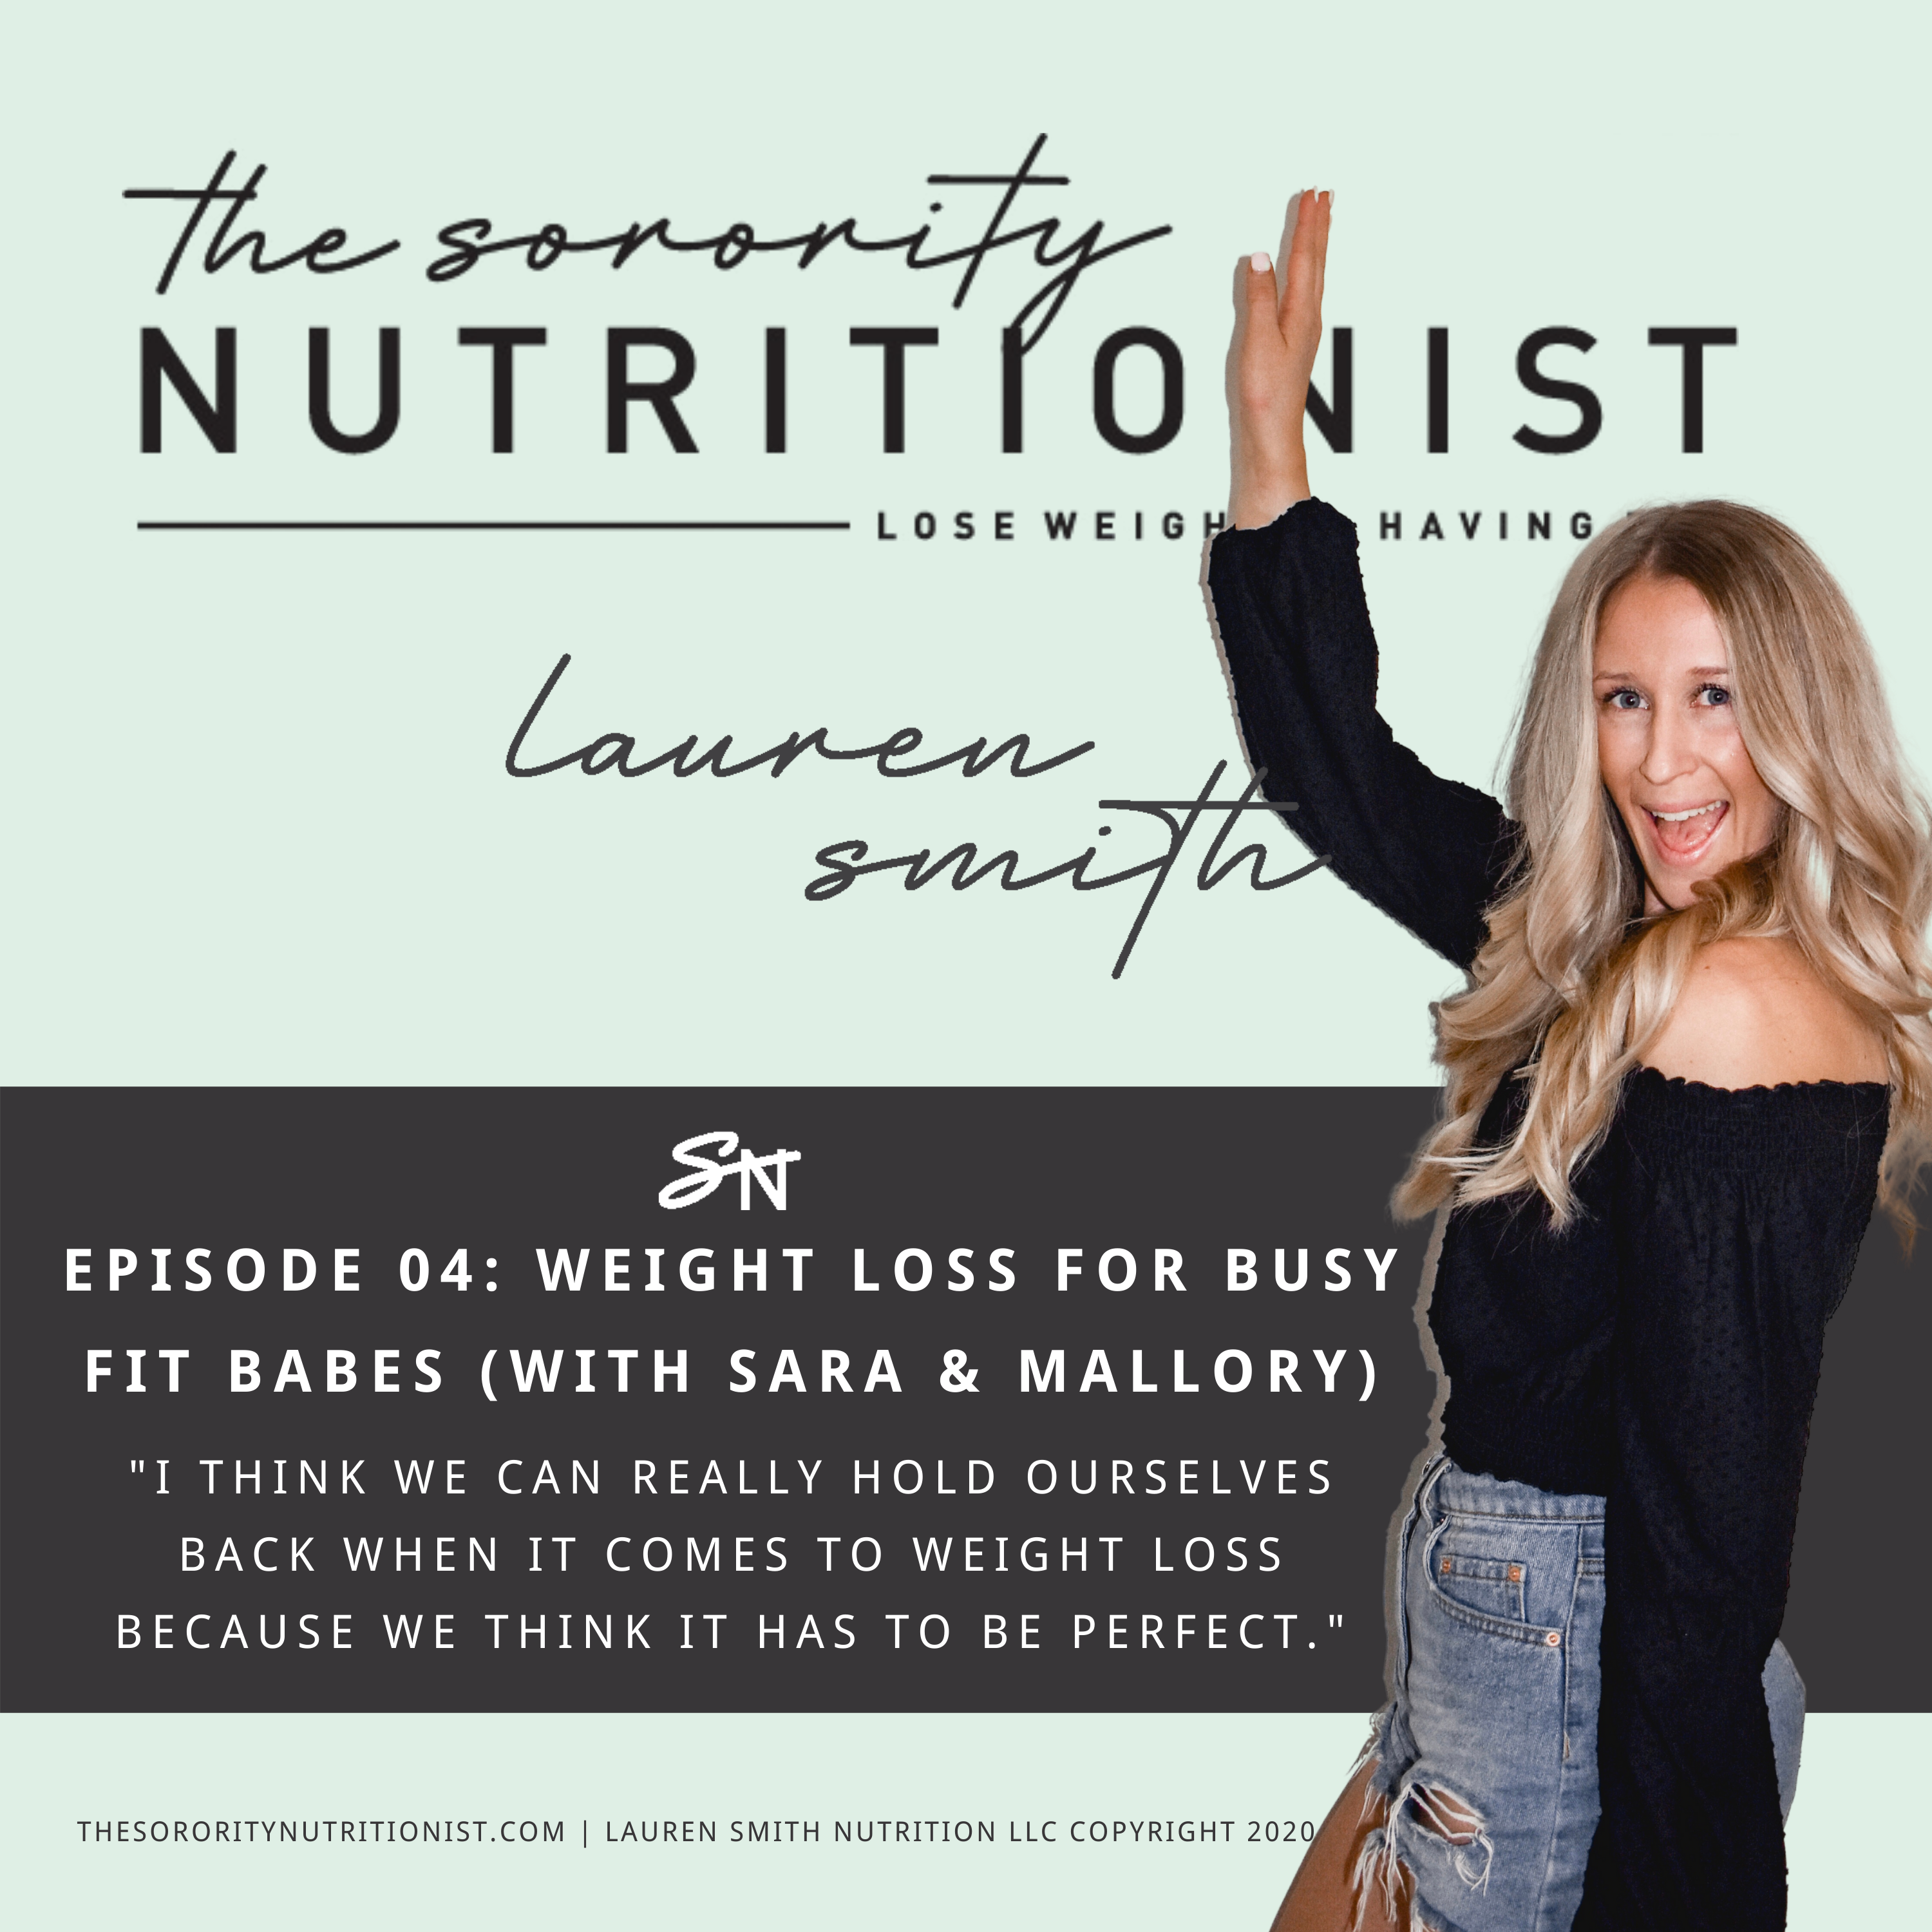 Weight Loss for Busy Fit Babes